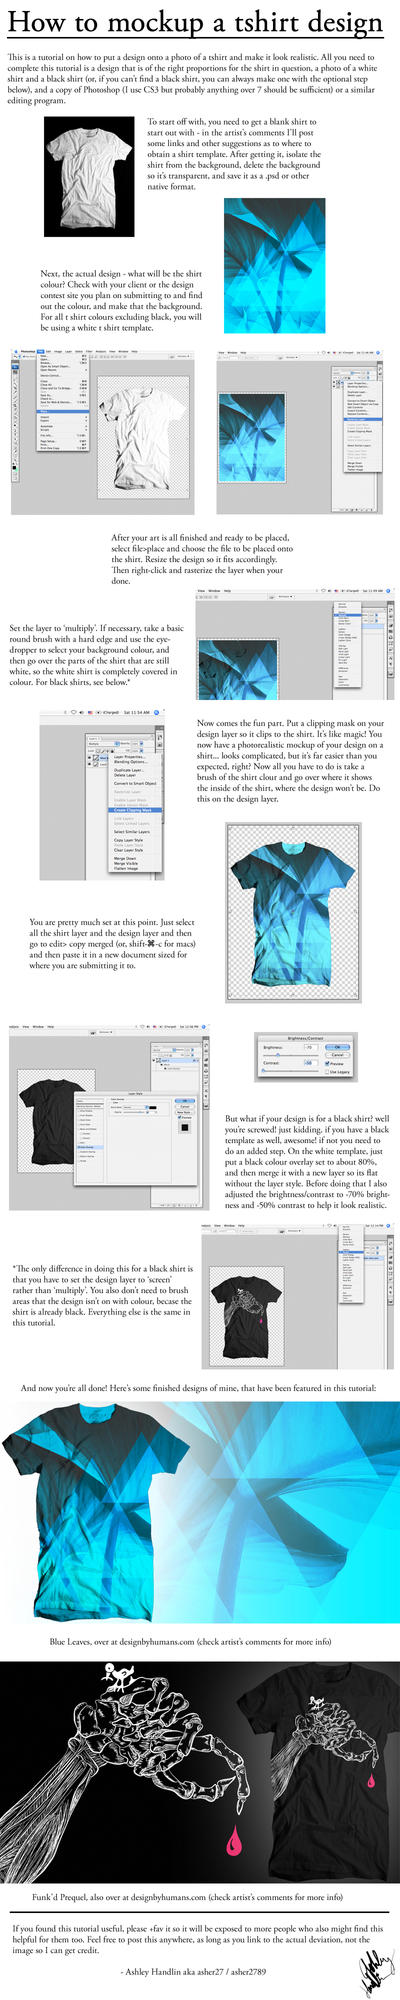 T shirt mockup tutorial by asher27